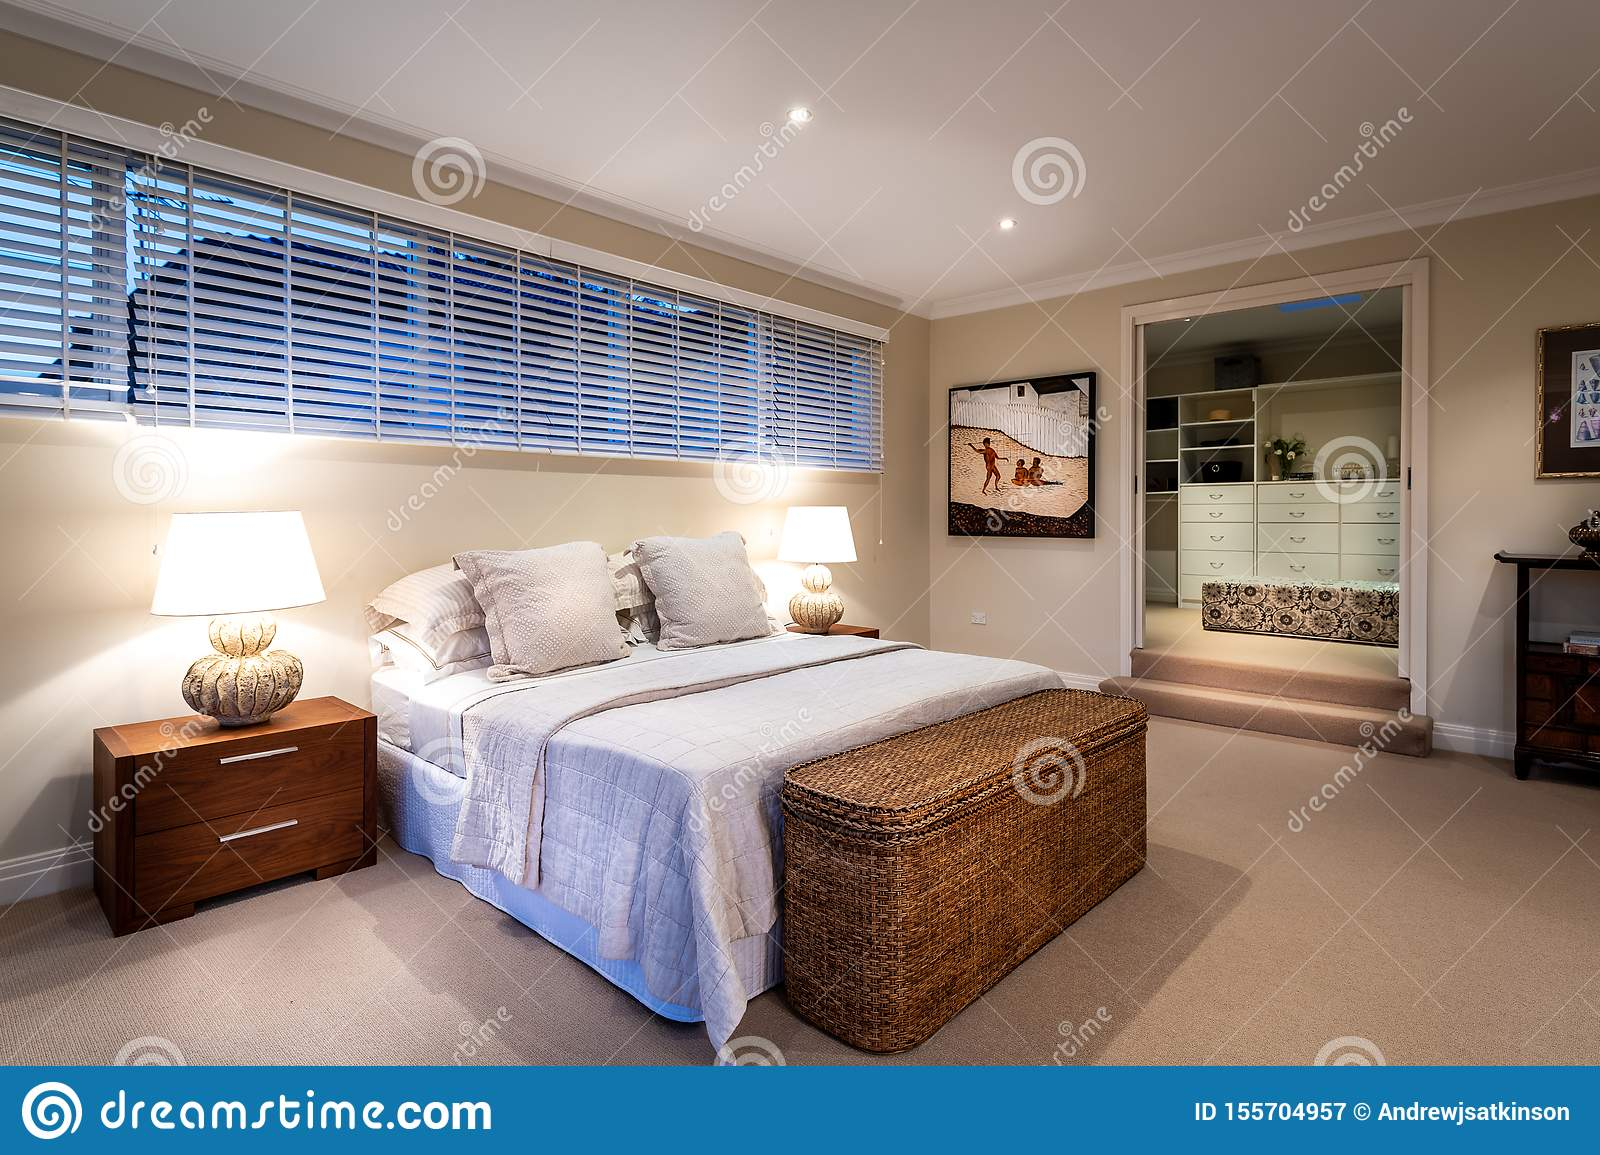 Modern Luxury Master Bed Room With Bed Side Tables Lamps Down Lights And Walk In Robe Real Estate Editorial Photography Image Of Bedroom Indoors 155704957